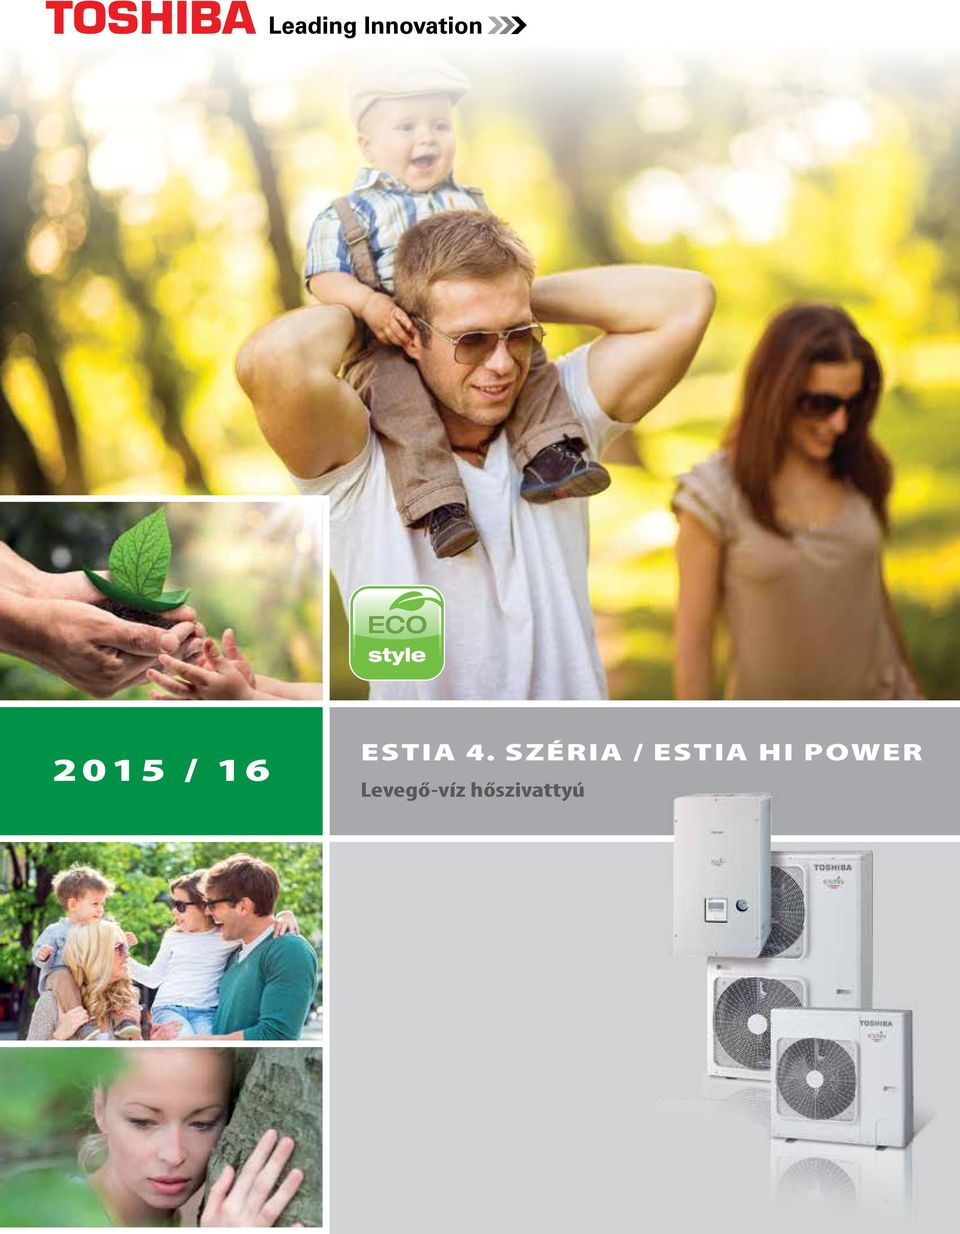 ESTIA HI POWER